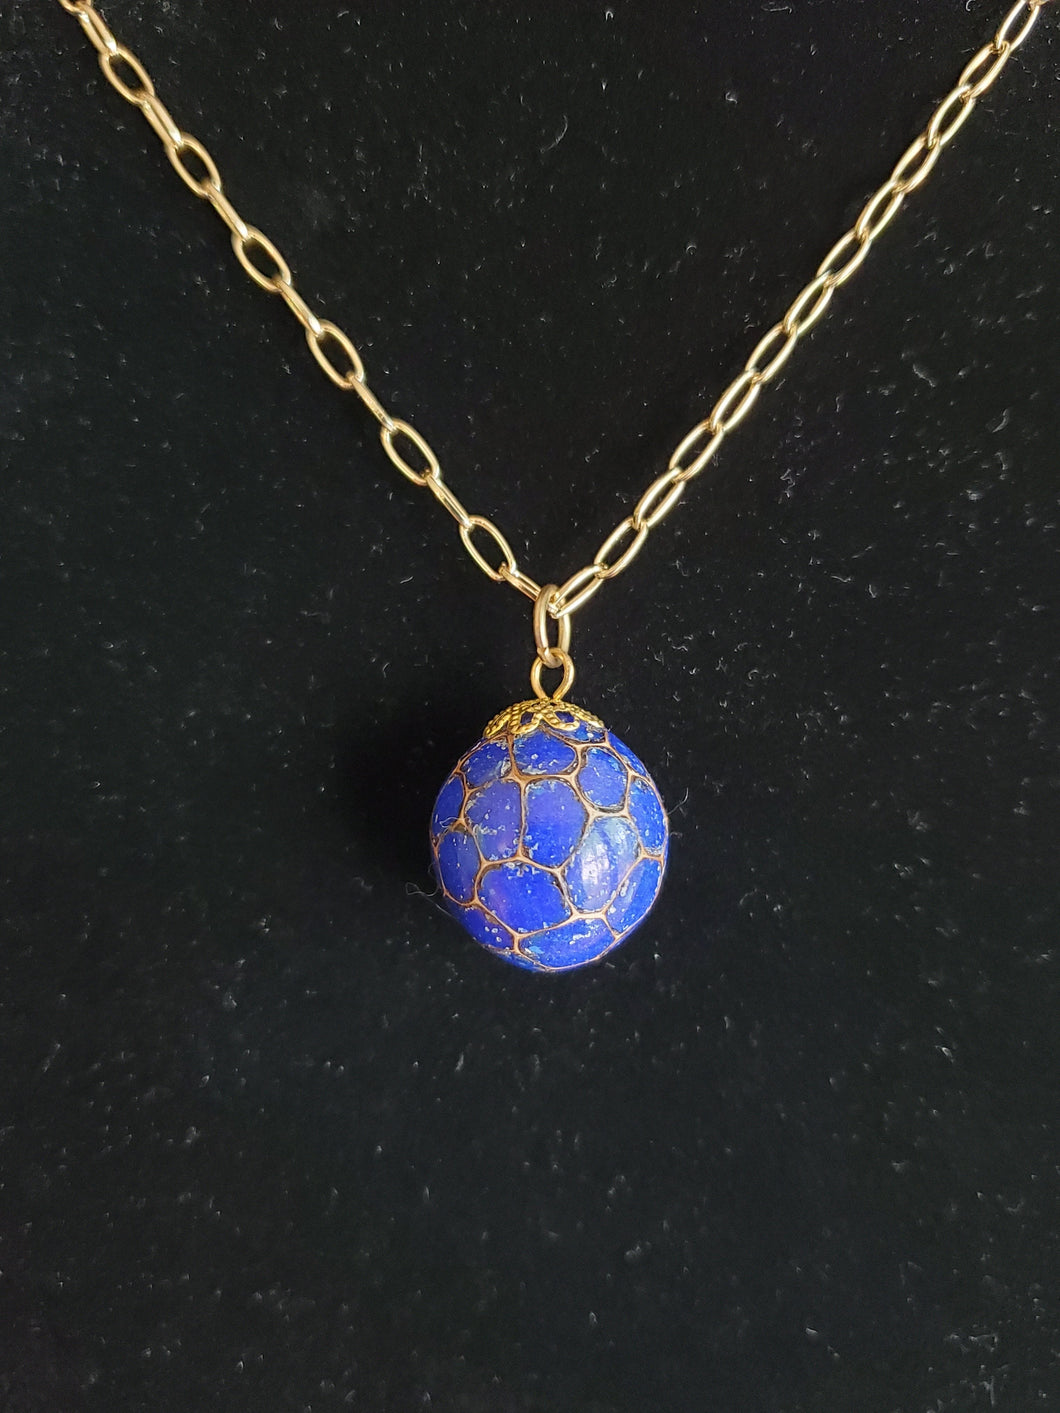 Sweetgum Ball Pendant - Blue Lapis